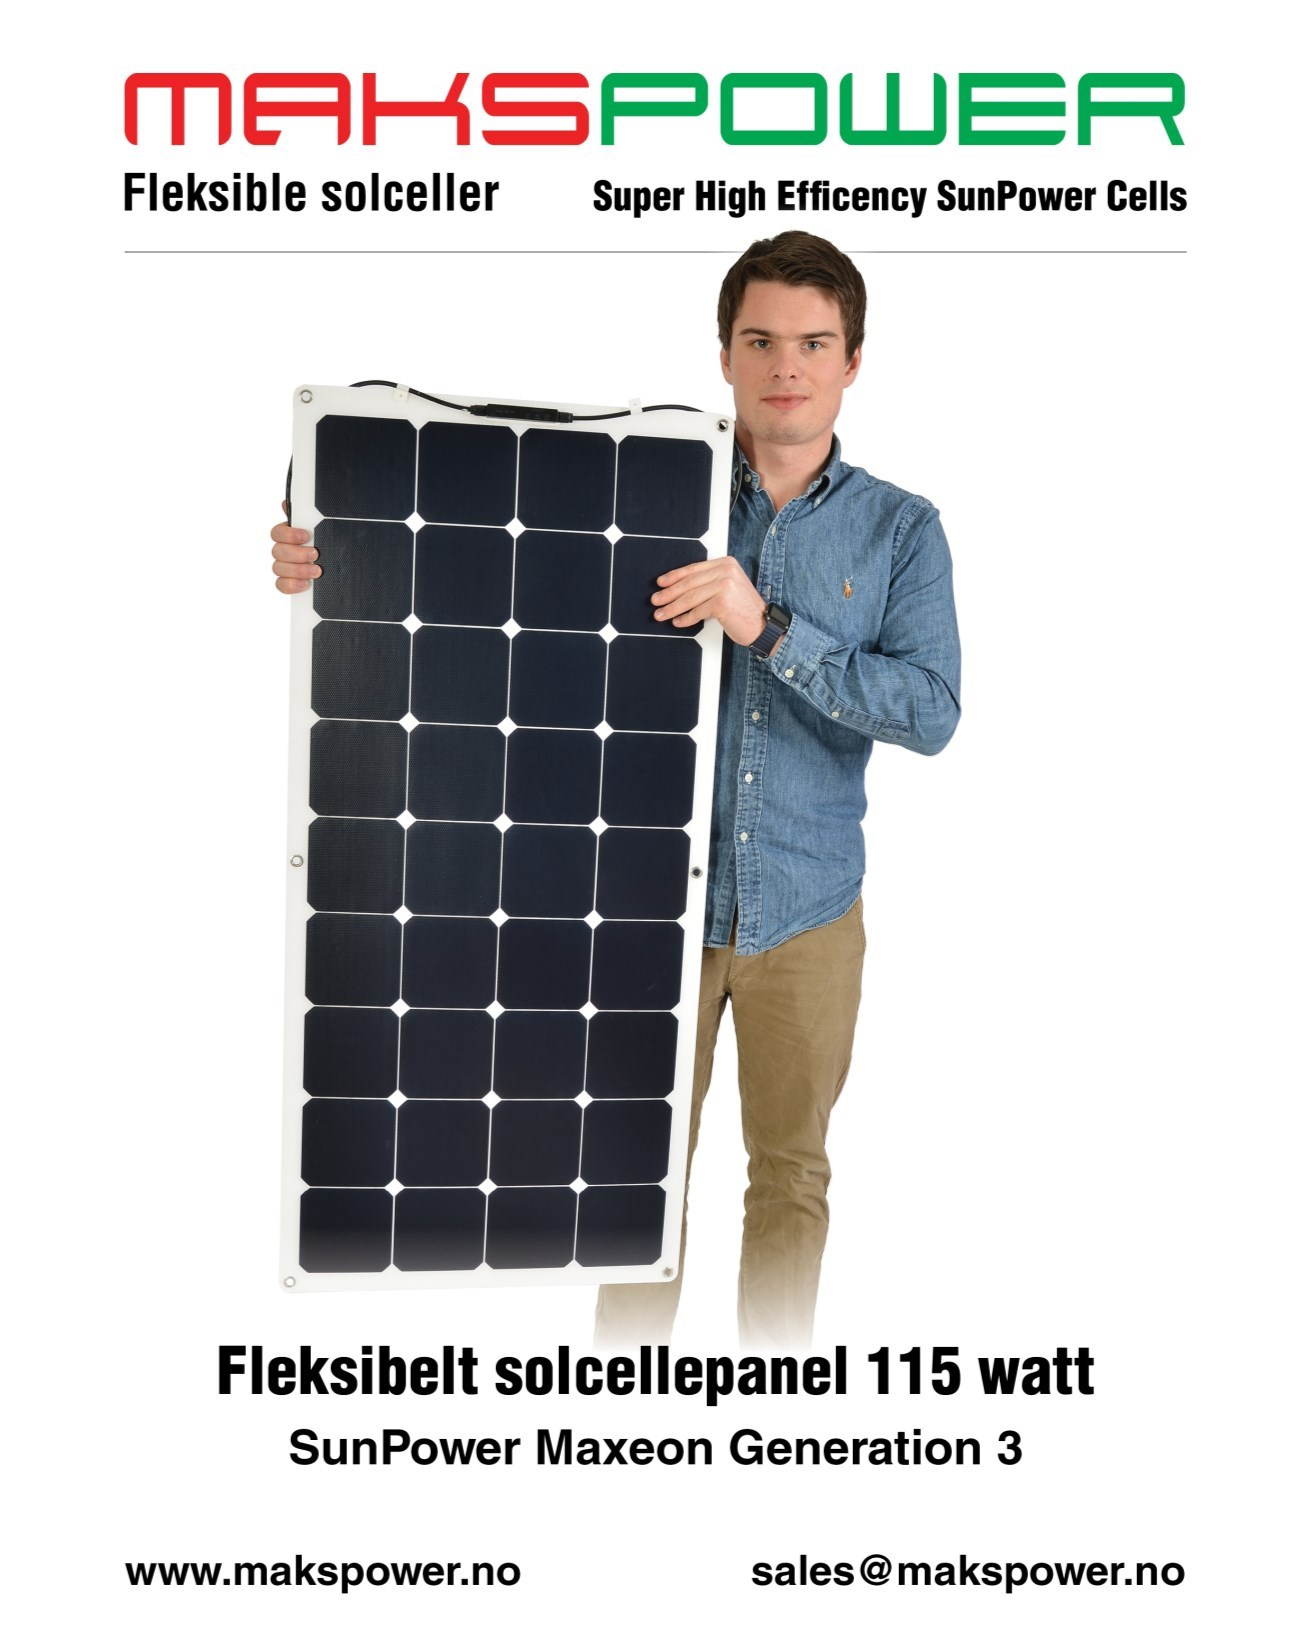 Makspower 115 Watt Fleksibelt solcellepanel SunPower Maxeon generation 3